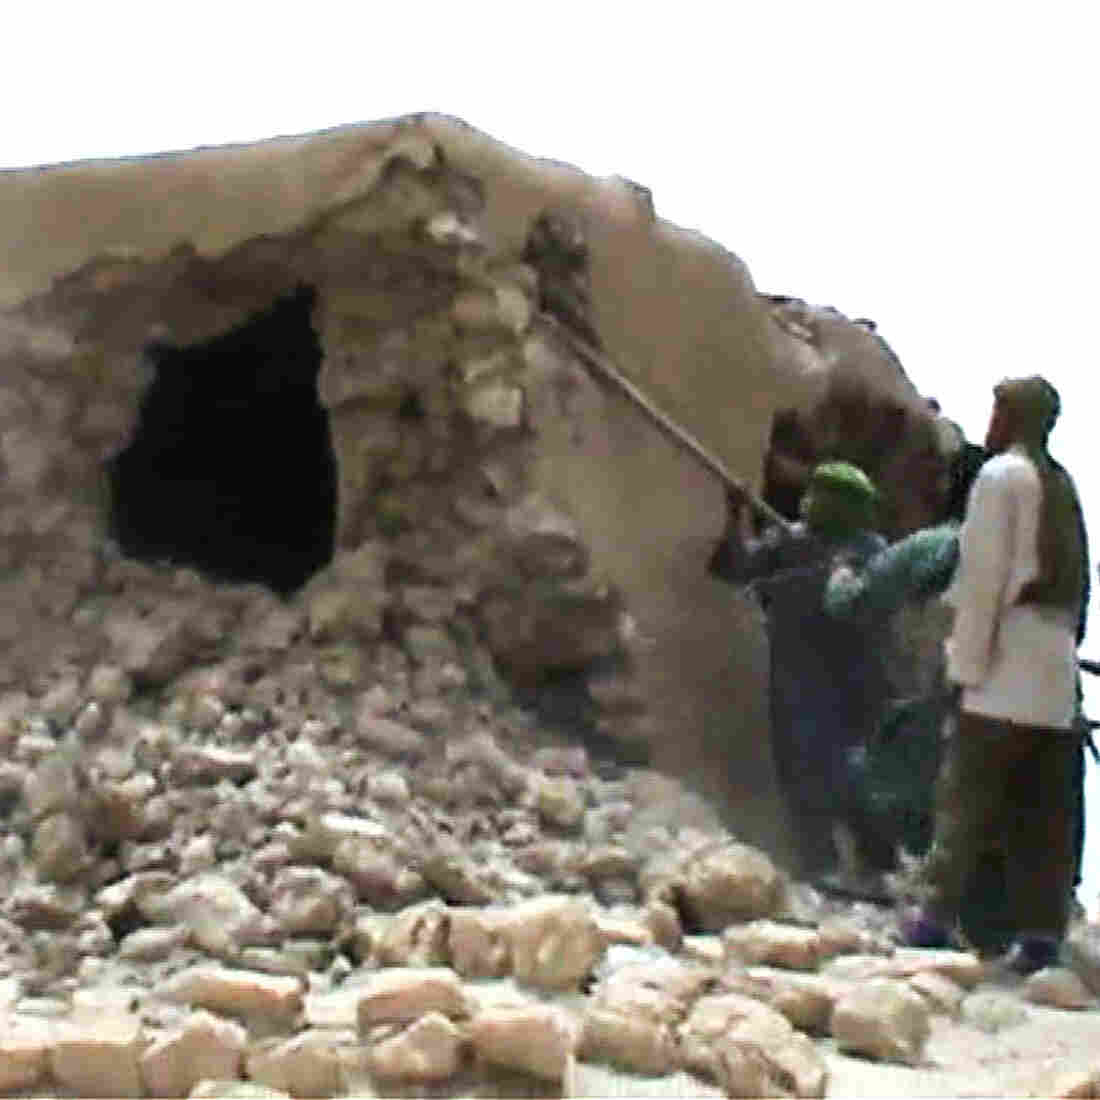 Timbuktu's Treasures Are Being Destroyed As World Watches Helplessly